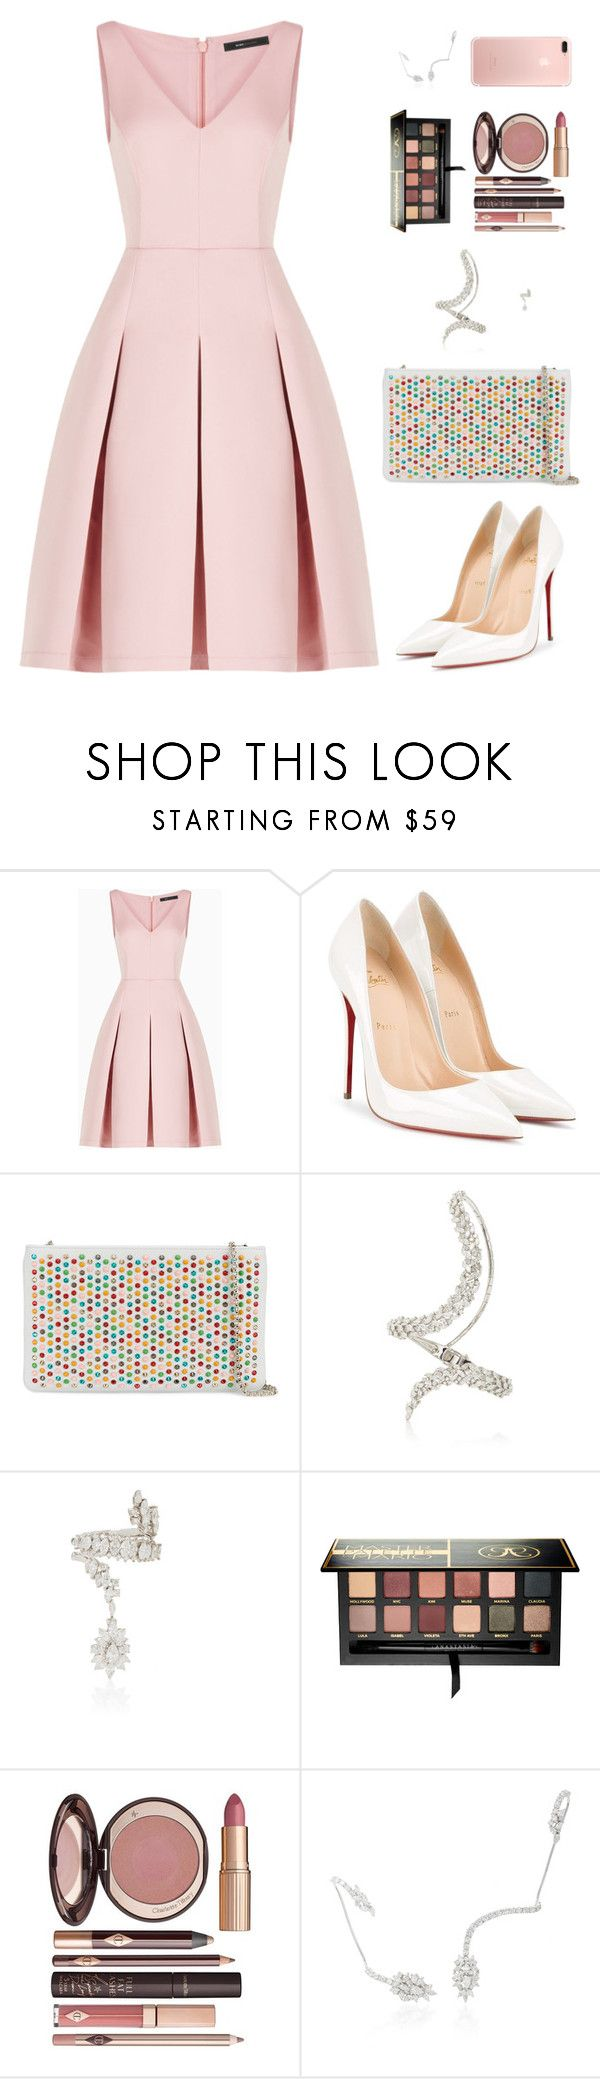 """Sin título #4519"" by mdmsb on Polyvore featuring moda, BCBGMAXAZRIA, Christian Louboutin, Yeprem, Anastasia Beverly Hills y Charlotte Tilbury"